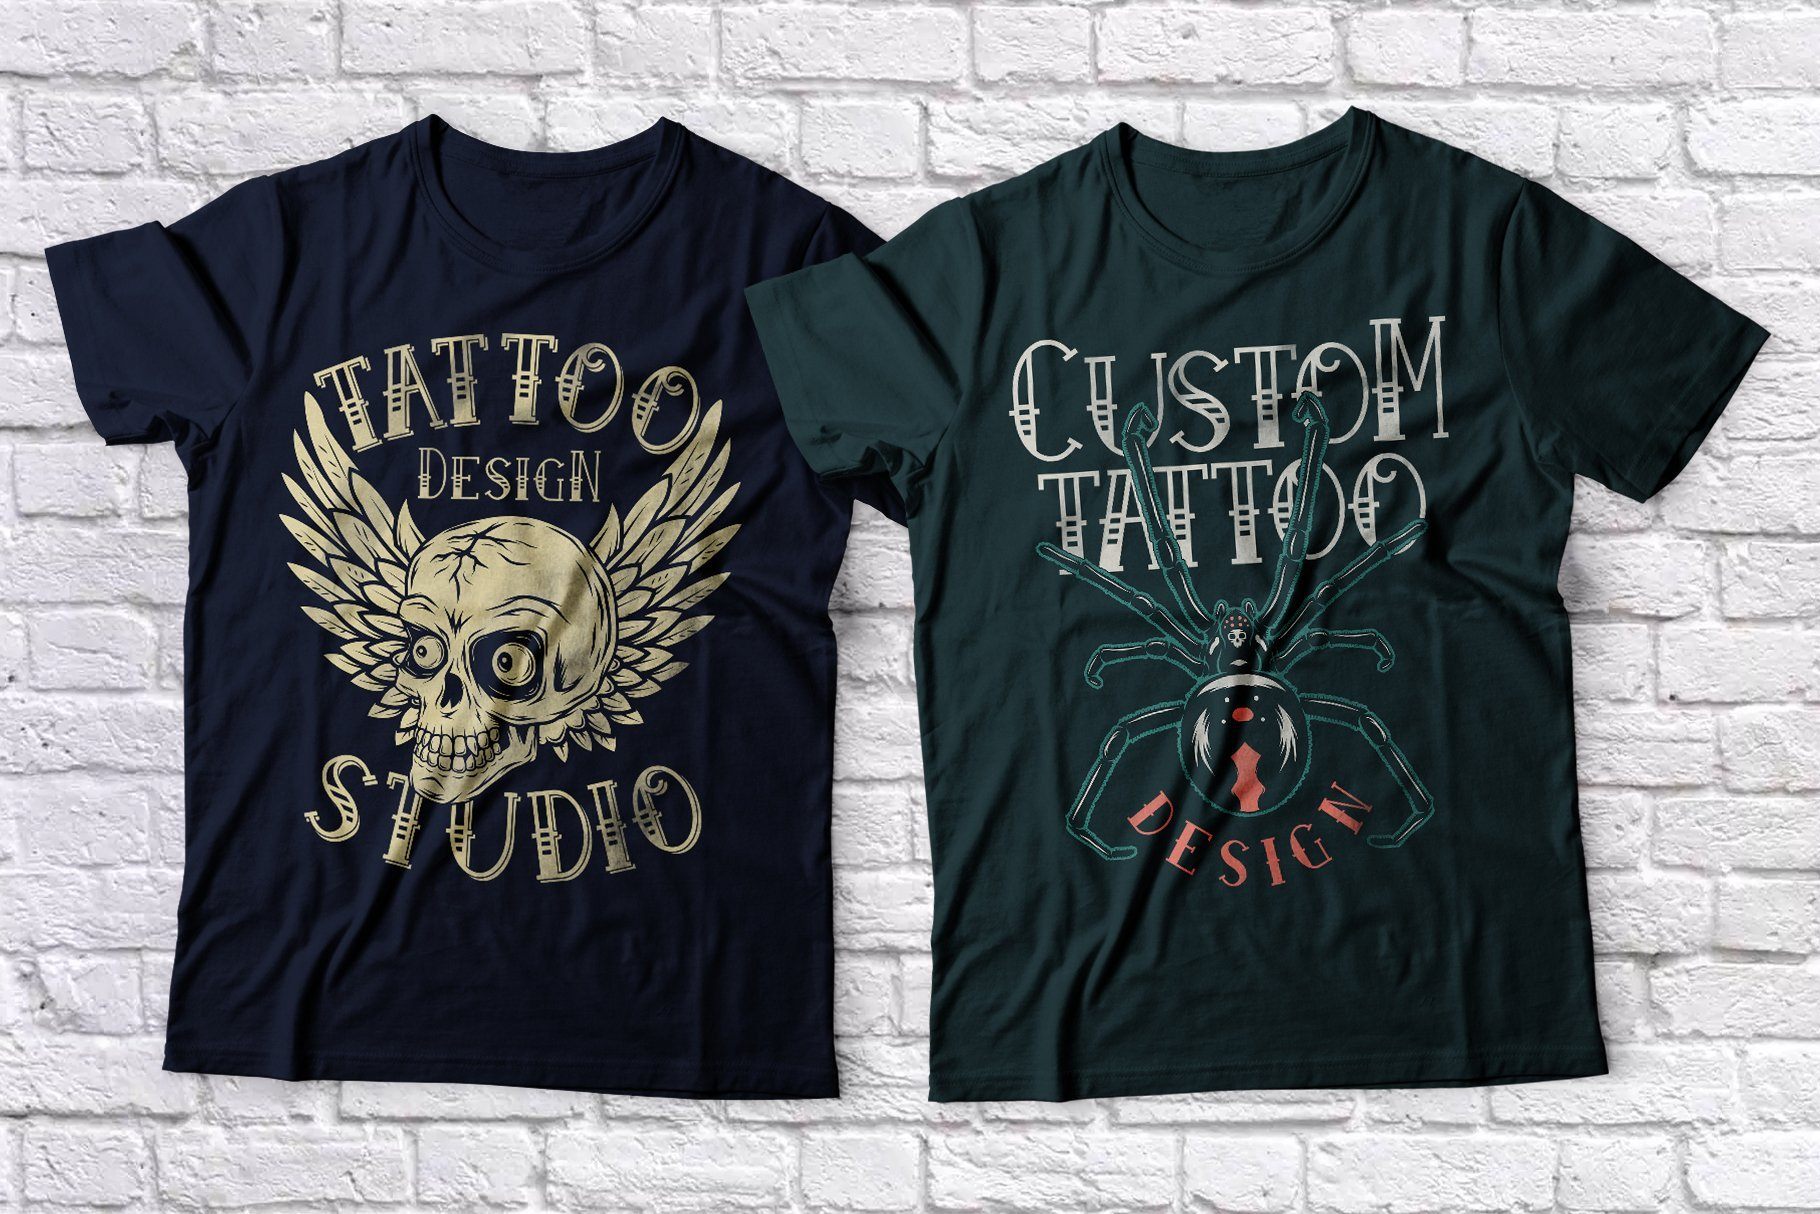 T-shirts featuring a spider and a skull with wings.